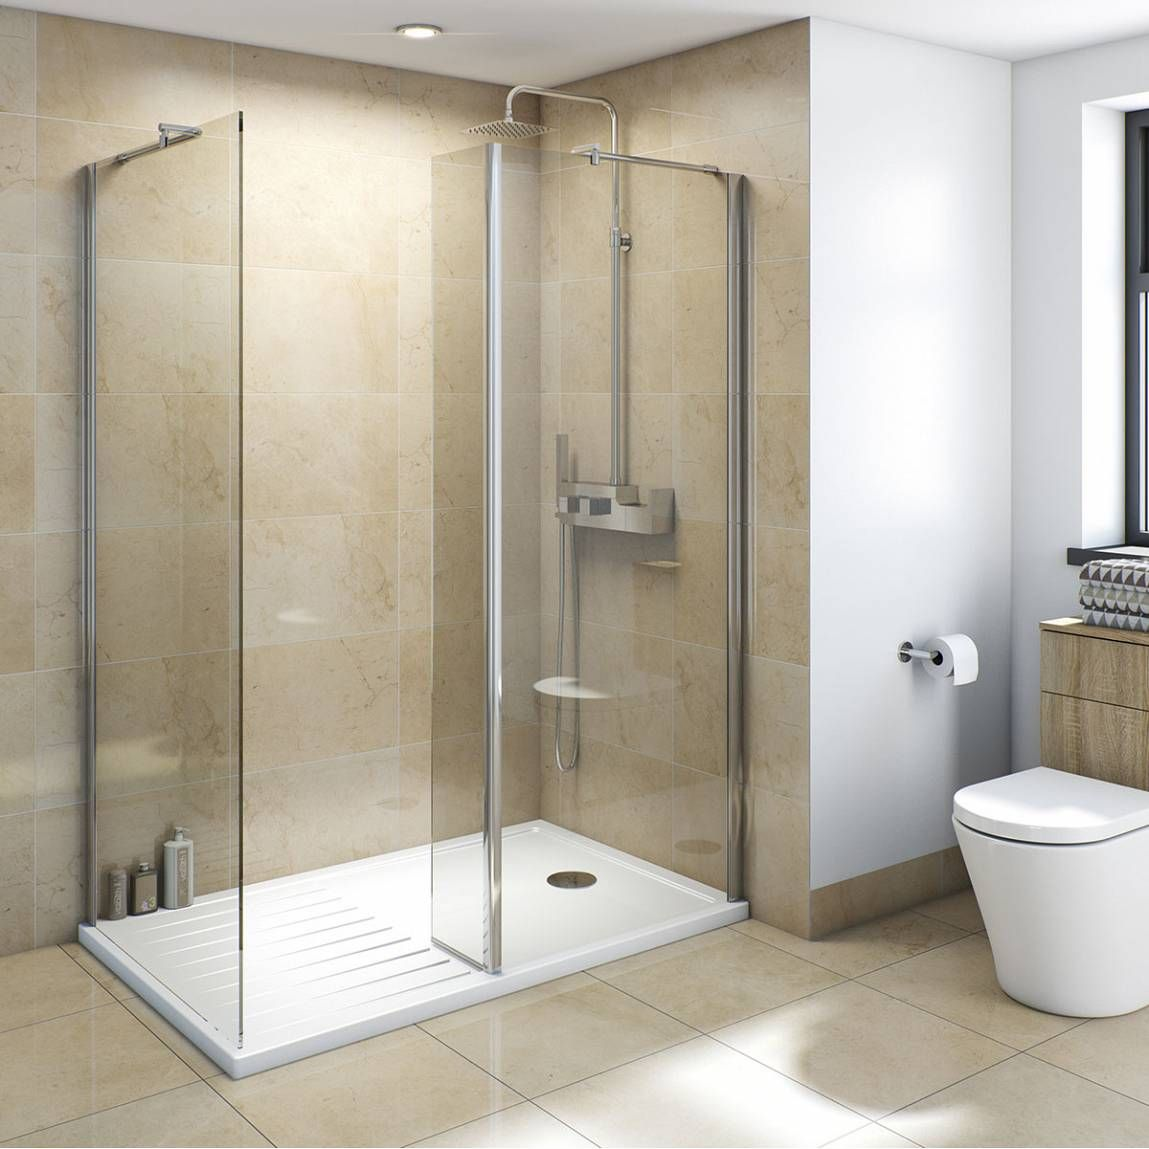 Bathroom Accessories Victoria Plumb v8+ walk in shower enclosure pack 1400 x 900 - victoria plumb